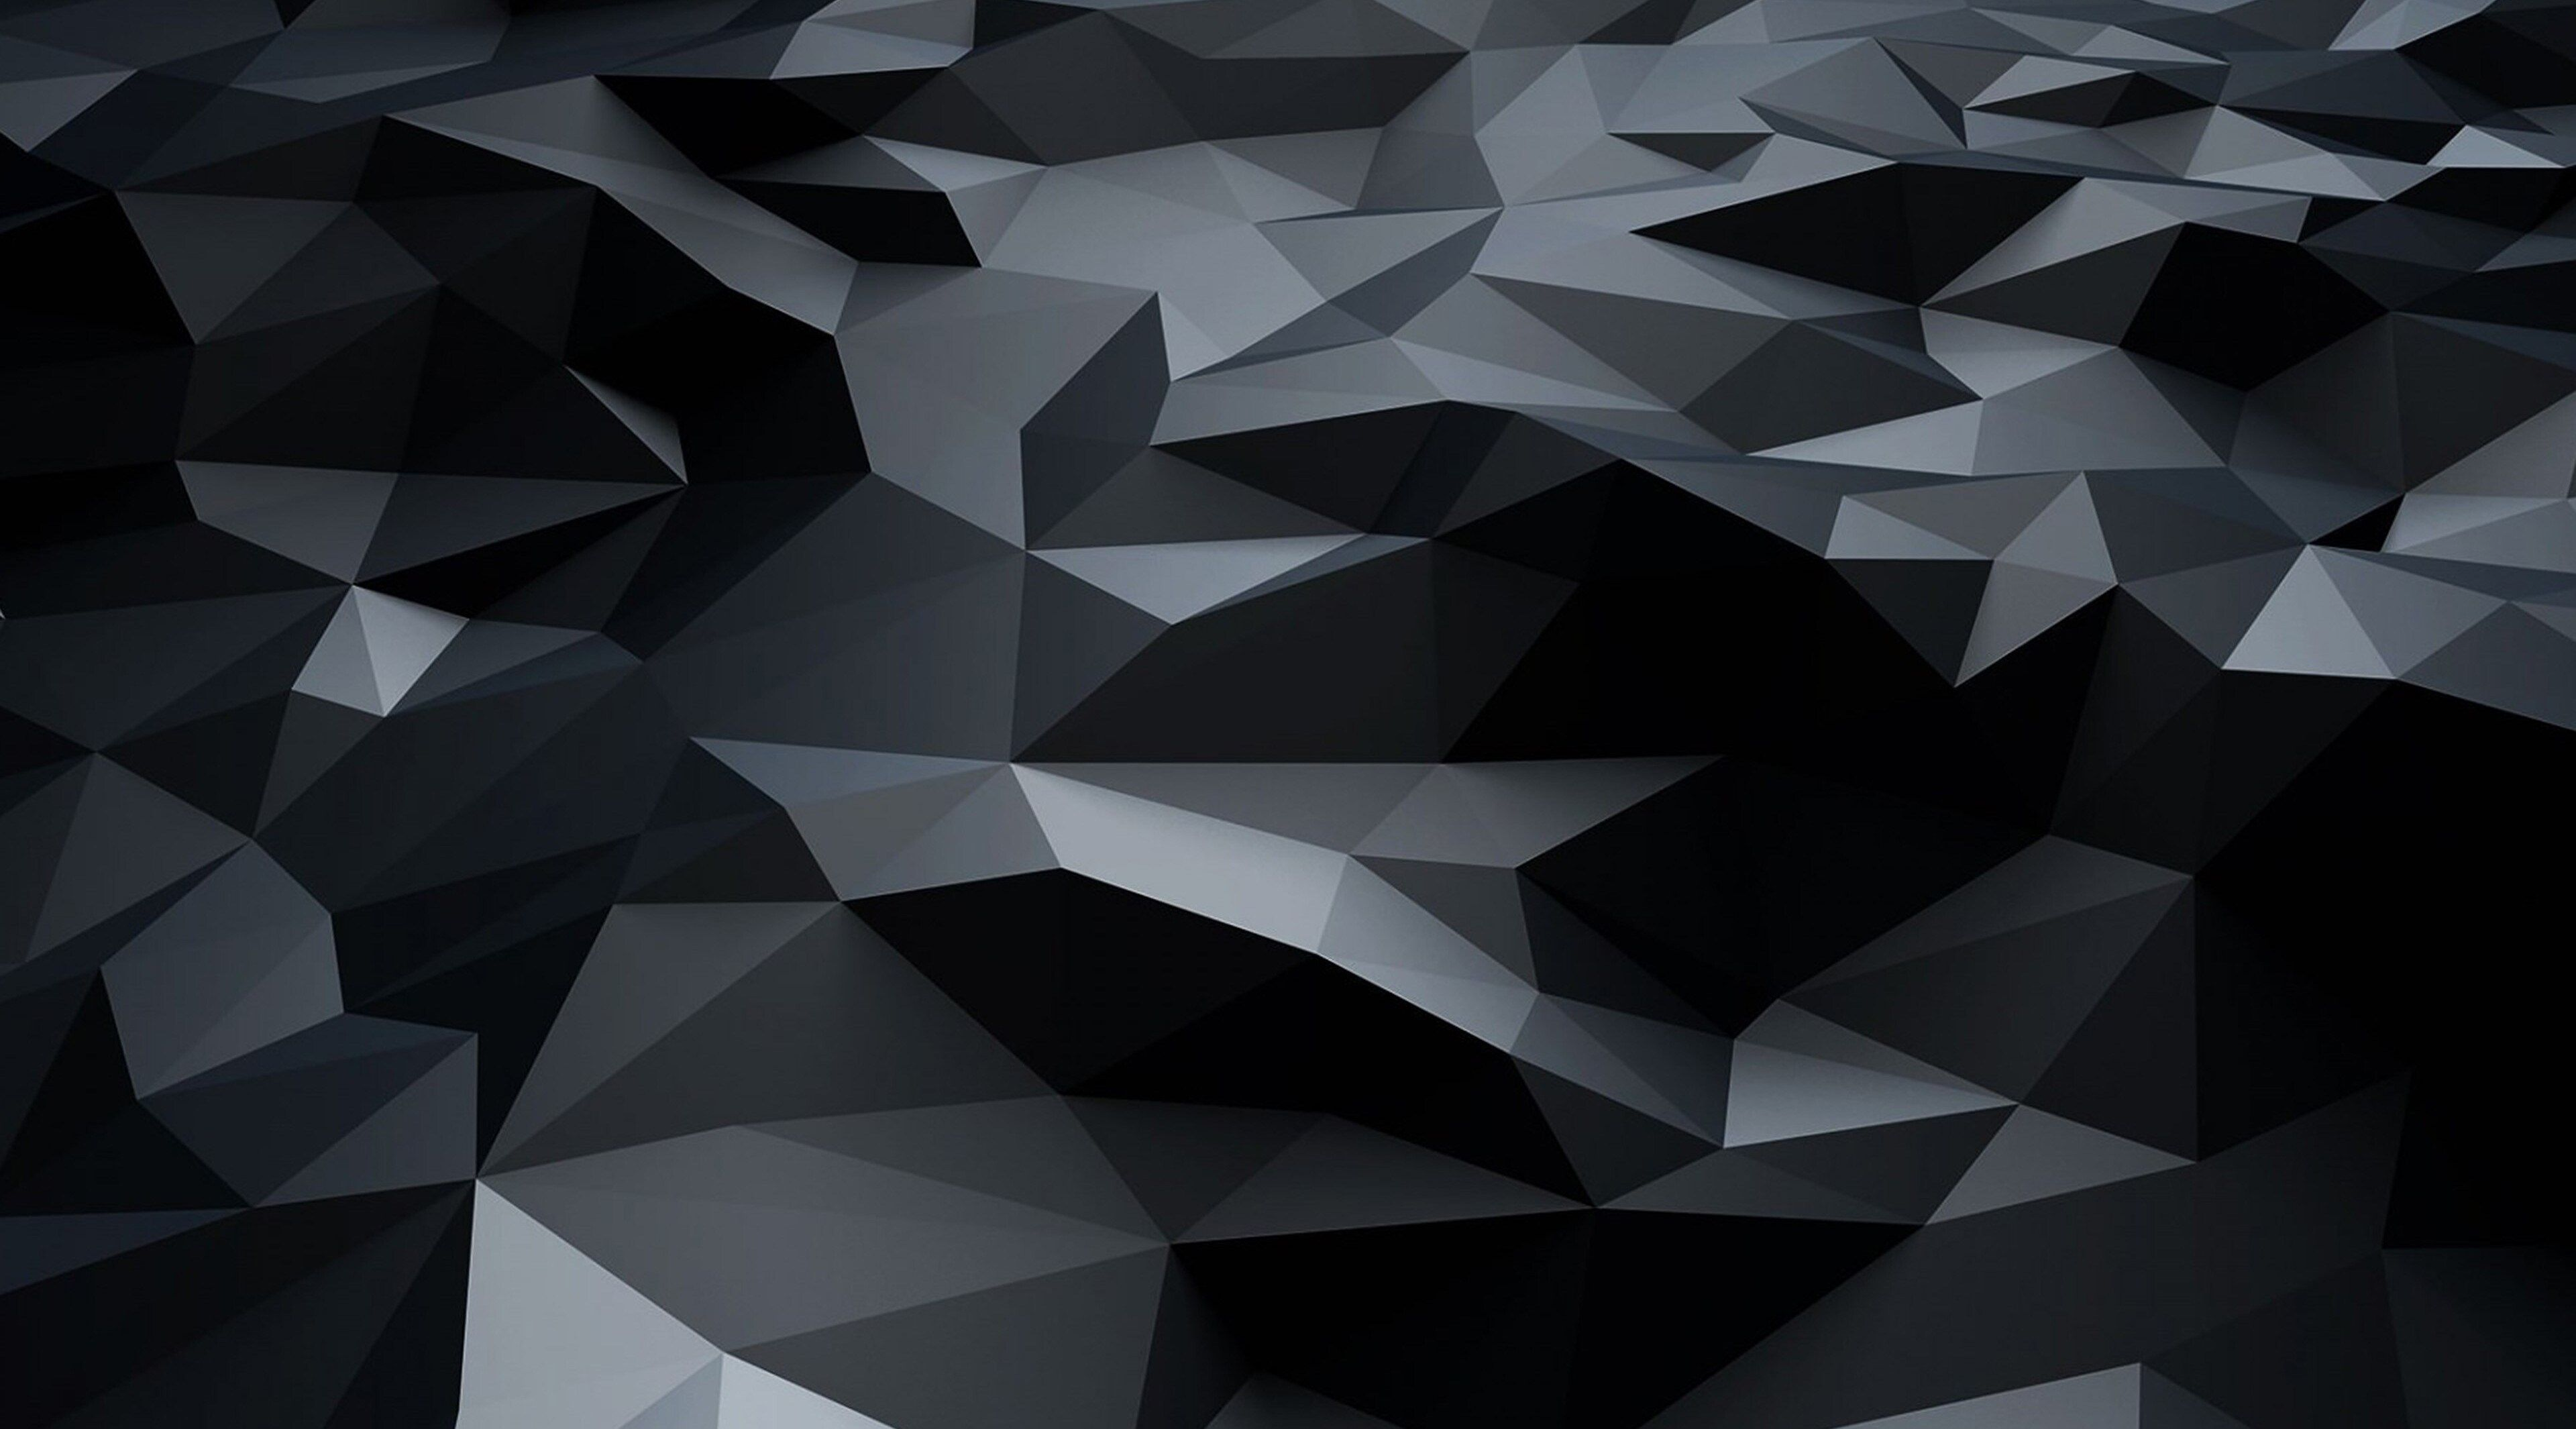 3840x2130 Polygons 4k Hd Wallpaper For Desktop Geometric Wallpaper Iphone Abstract Low Poly Art